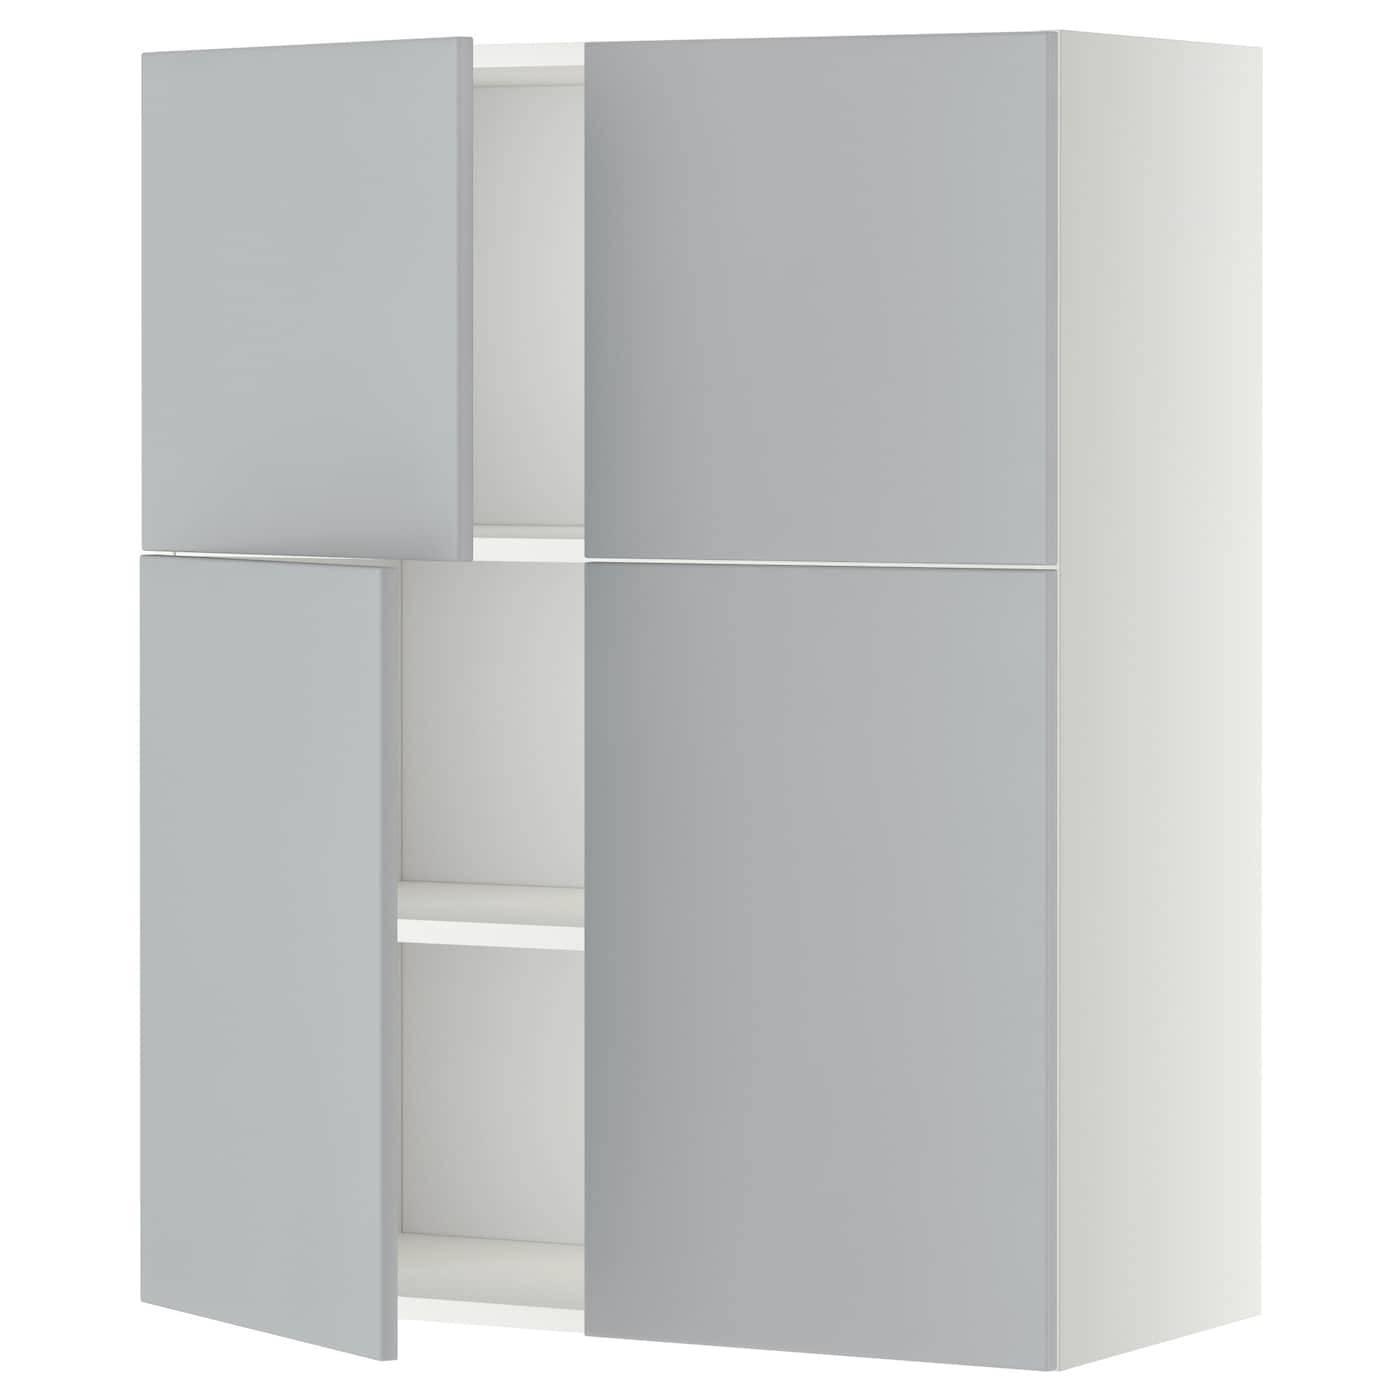 Metod Wall Cabinet With Shelves 4 Doors White Veddinge Grey 80x100 Cm Ikea